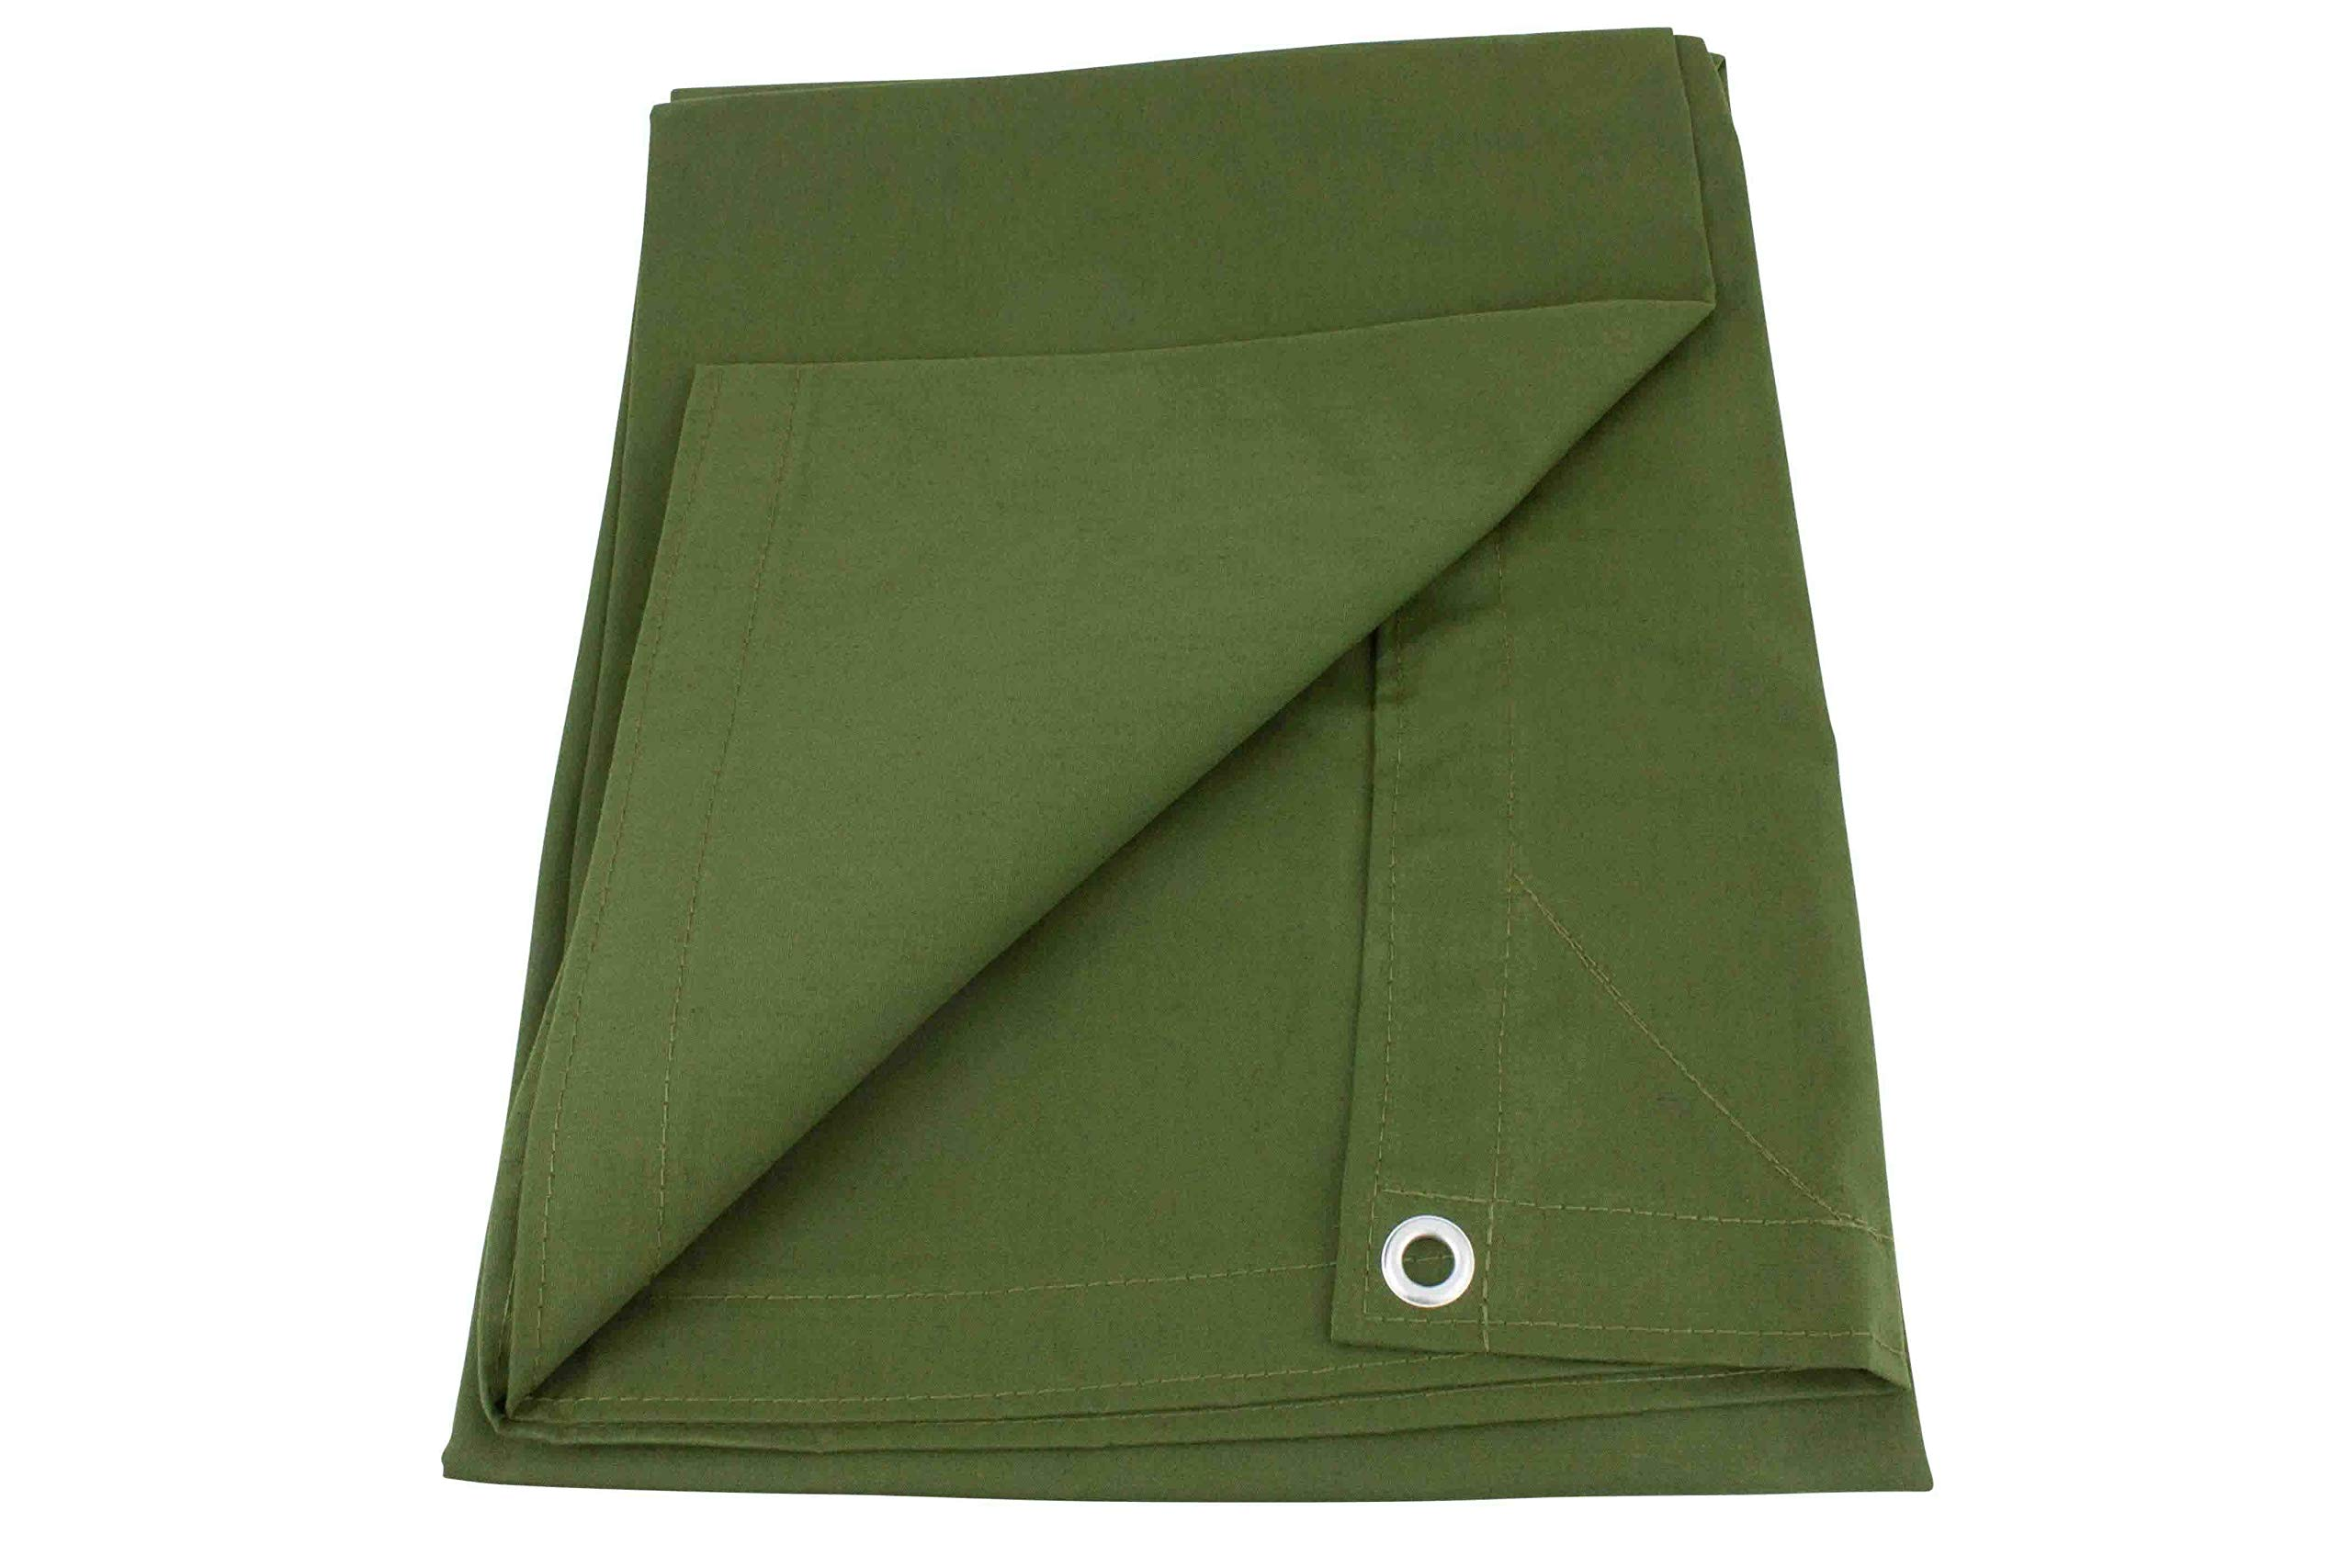 6' x 8' Green Canvas Tarp 12oz Heavy Duty Water Resistant by Mytee Products